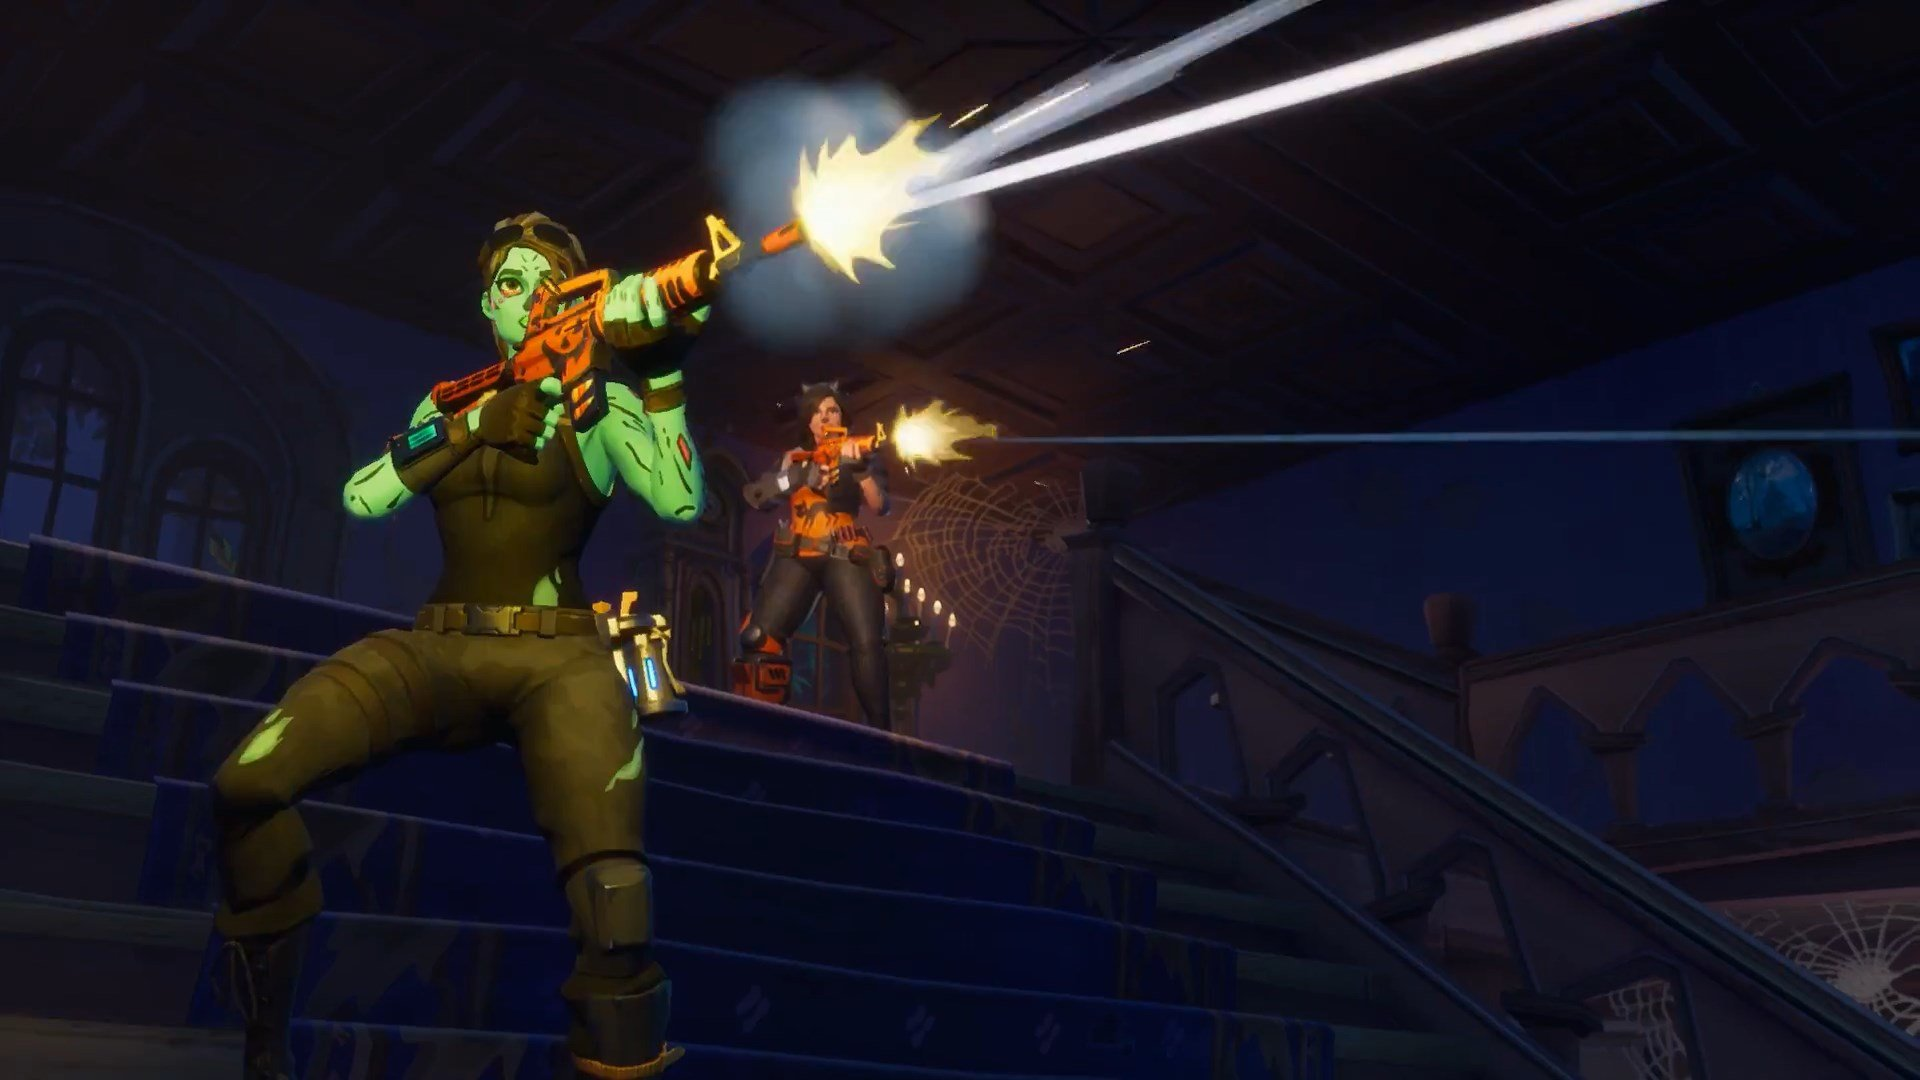 View the current and past event quests and rewards with tips and tricks Fortnite events grant a lot of VBucks Events have introduced new heroes weapons traps and